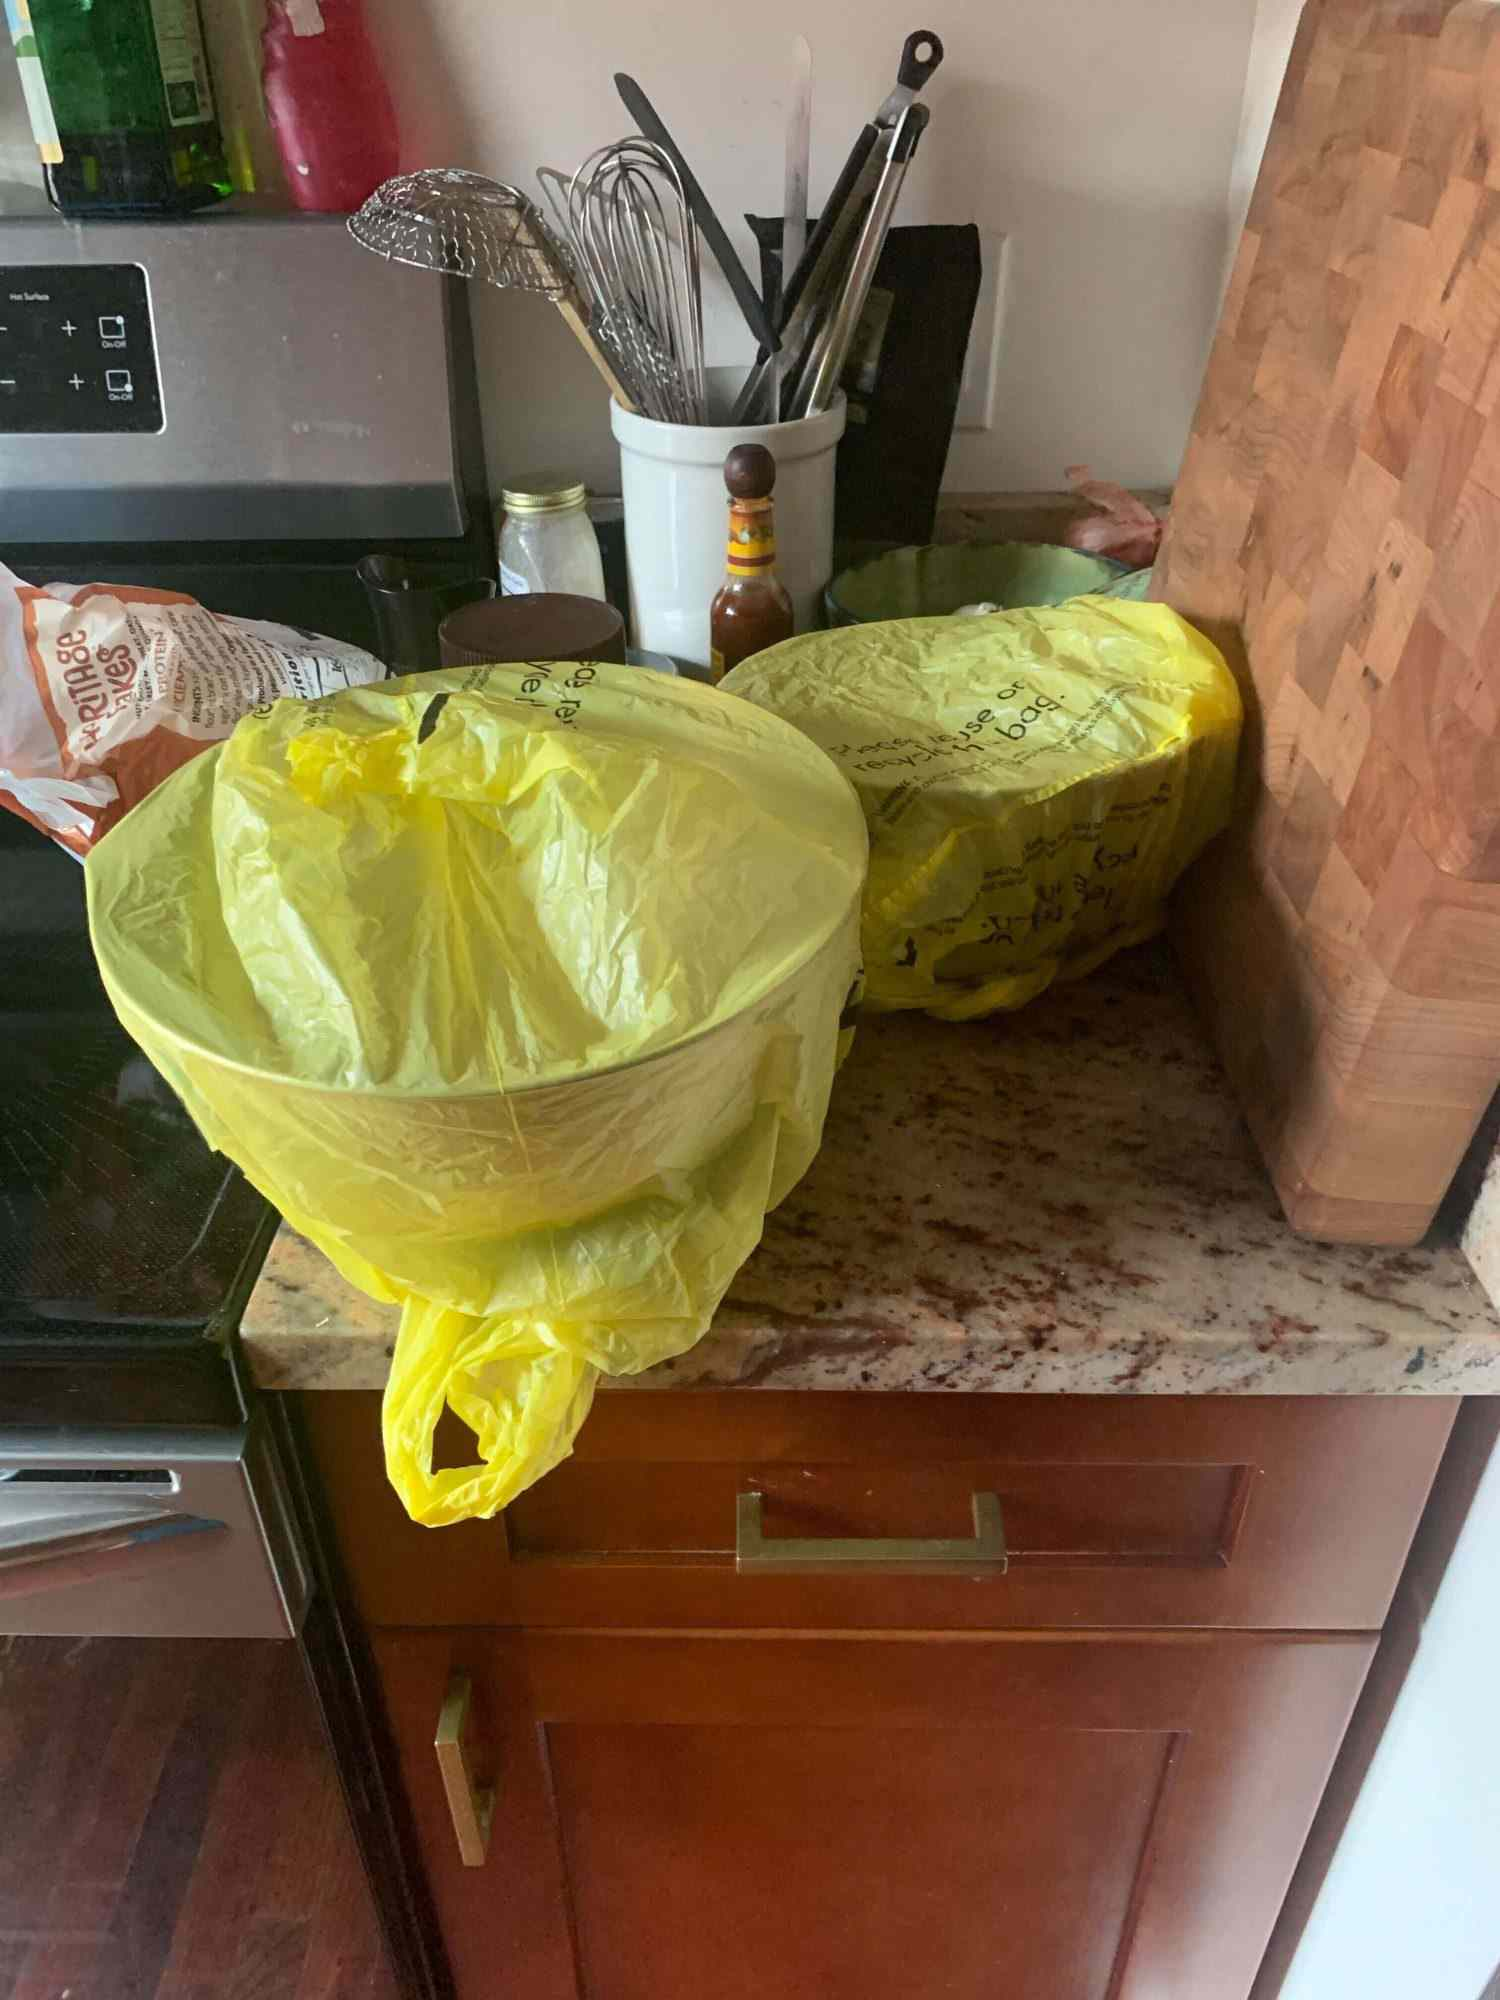 Bowls wrapped in plastic grocery bags